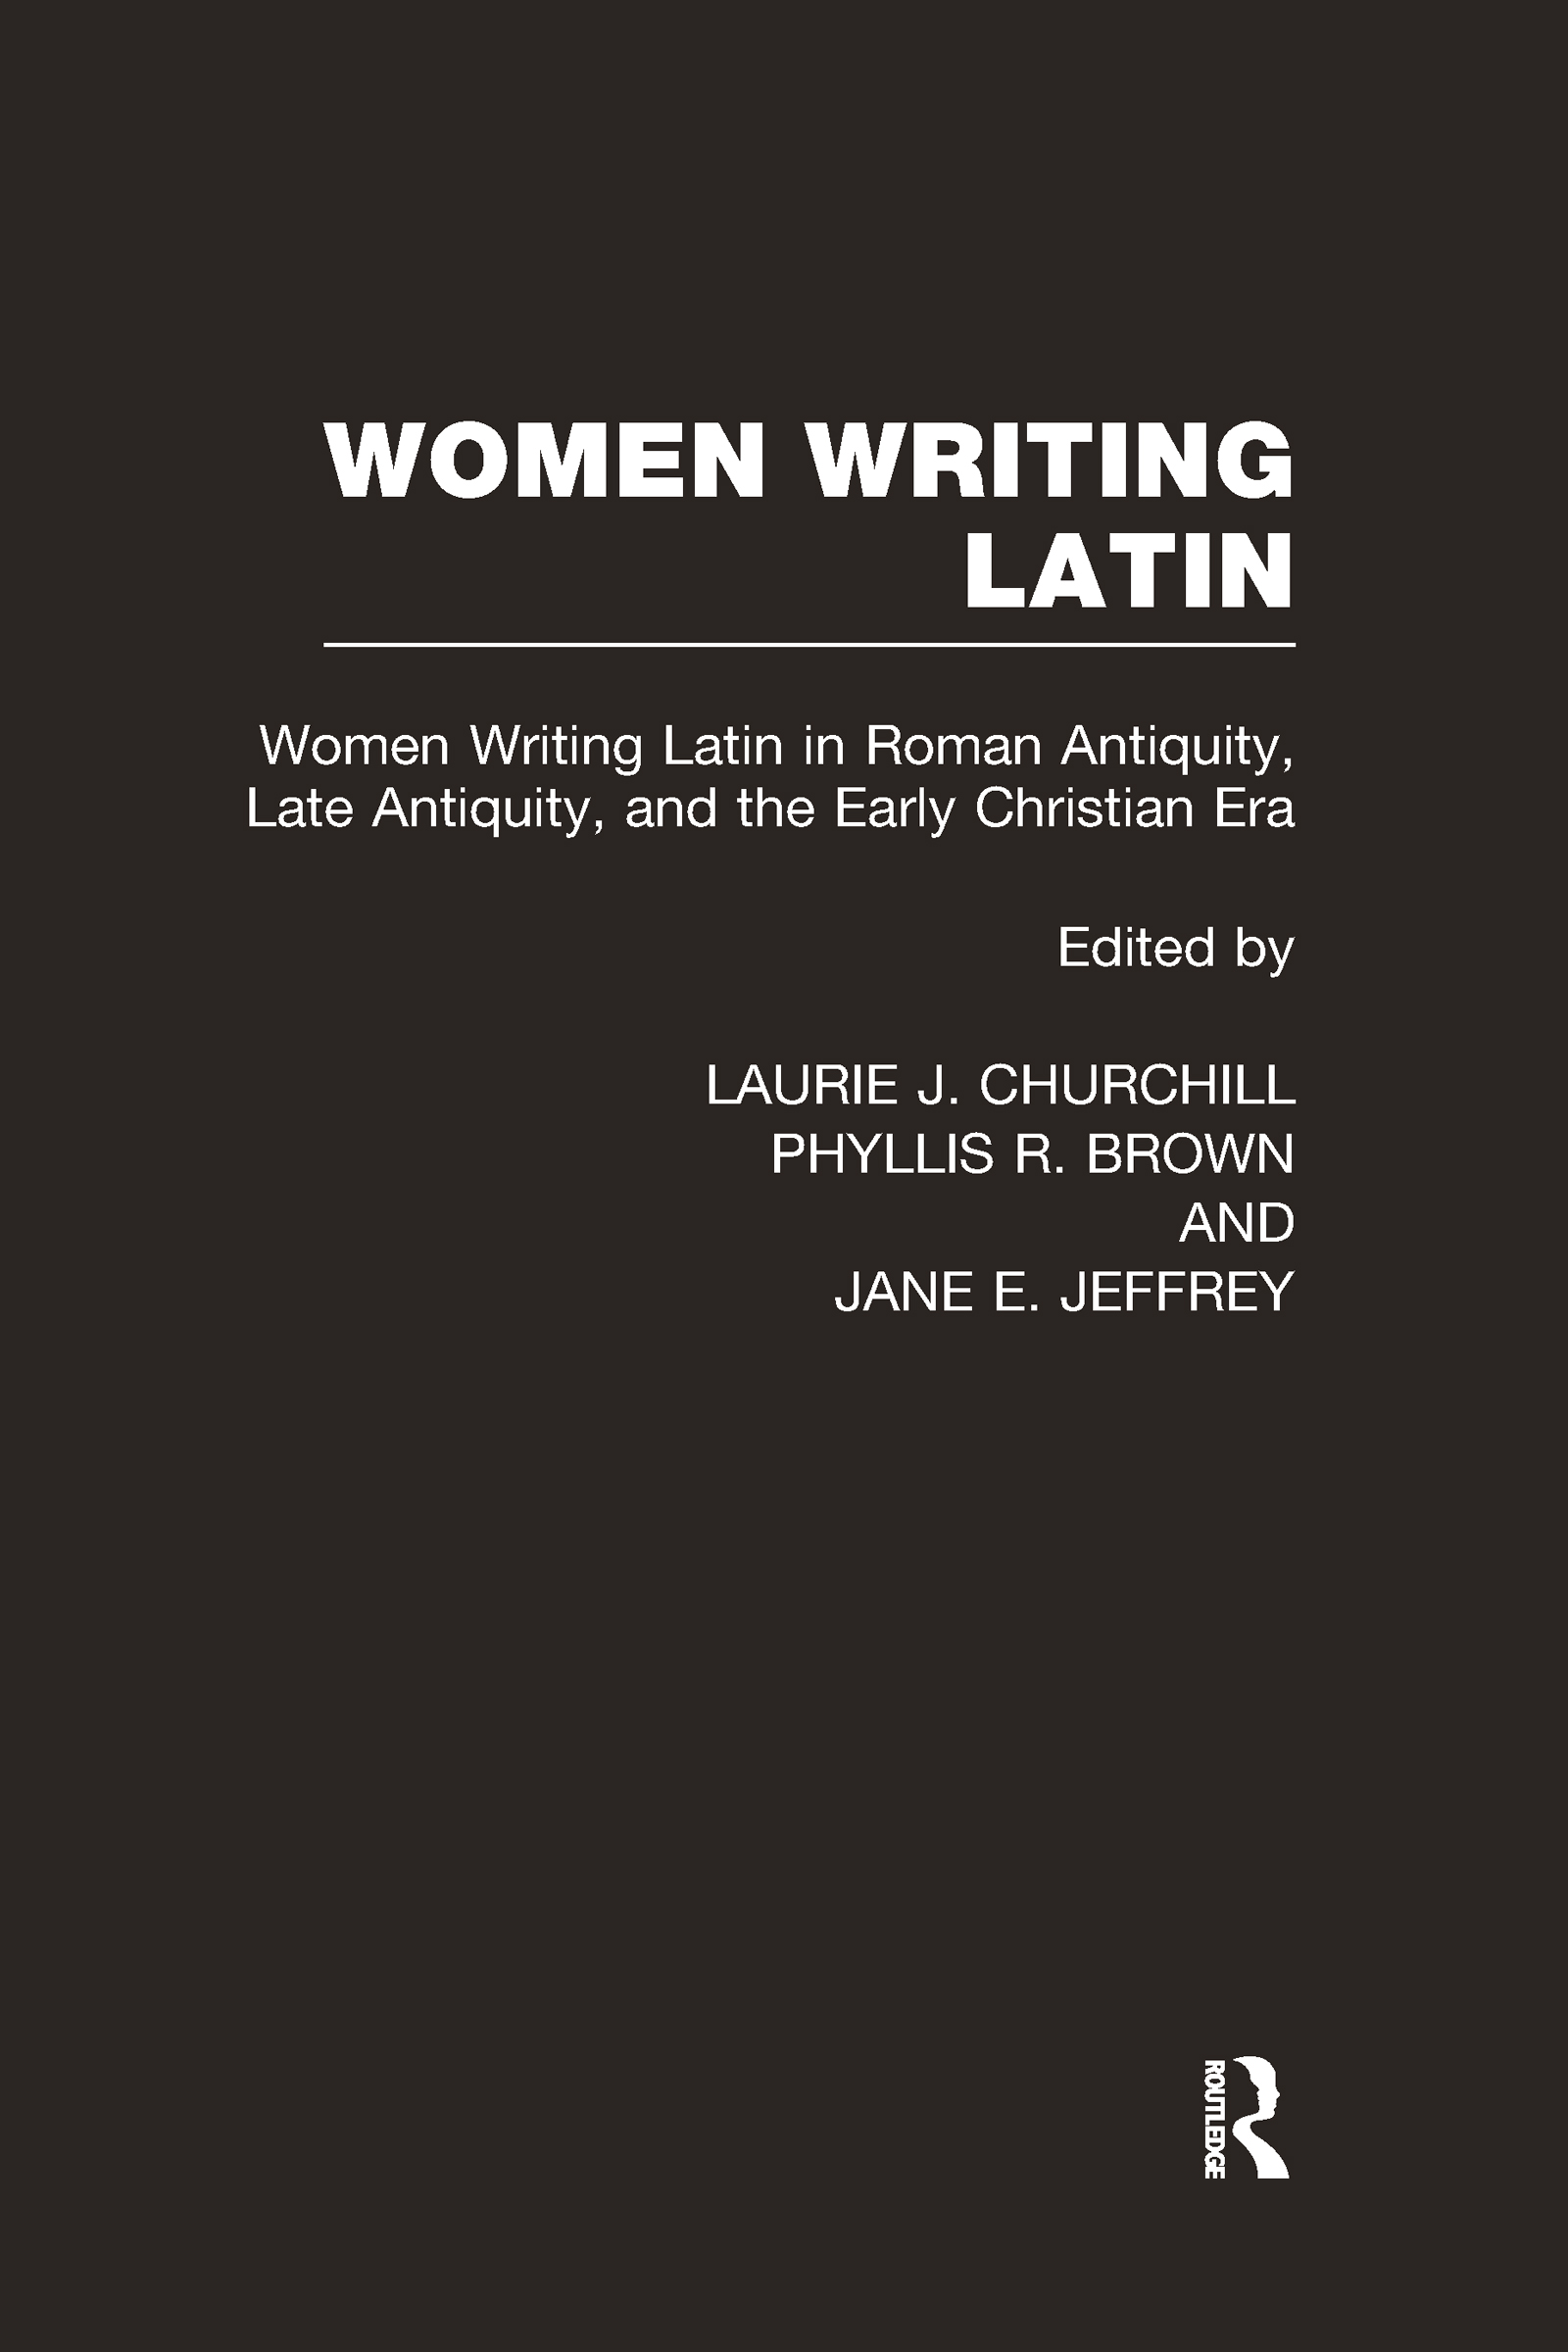 Women Writing Latin: Women Writing Latin in Roman Antiquity, Late Antiquity, and the Early Christian Era, 1st Edition (Hardback) book cover